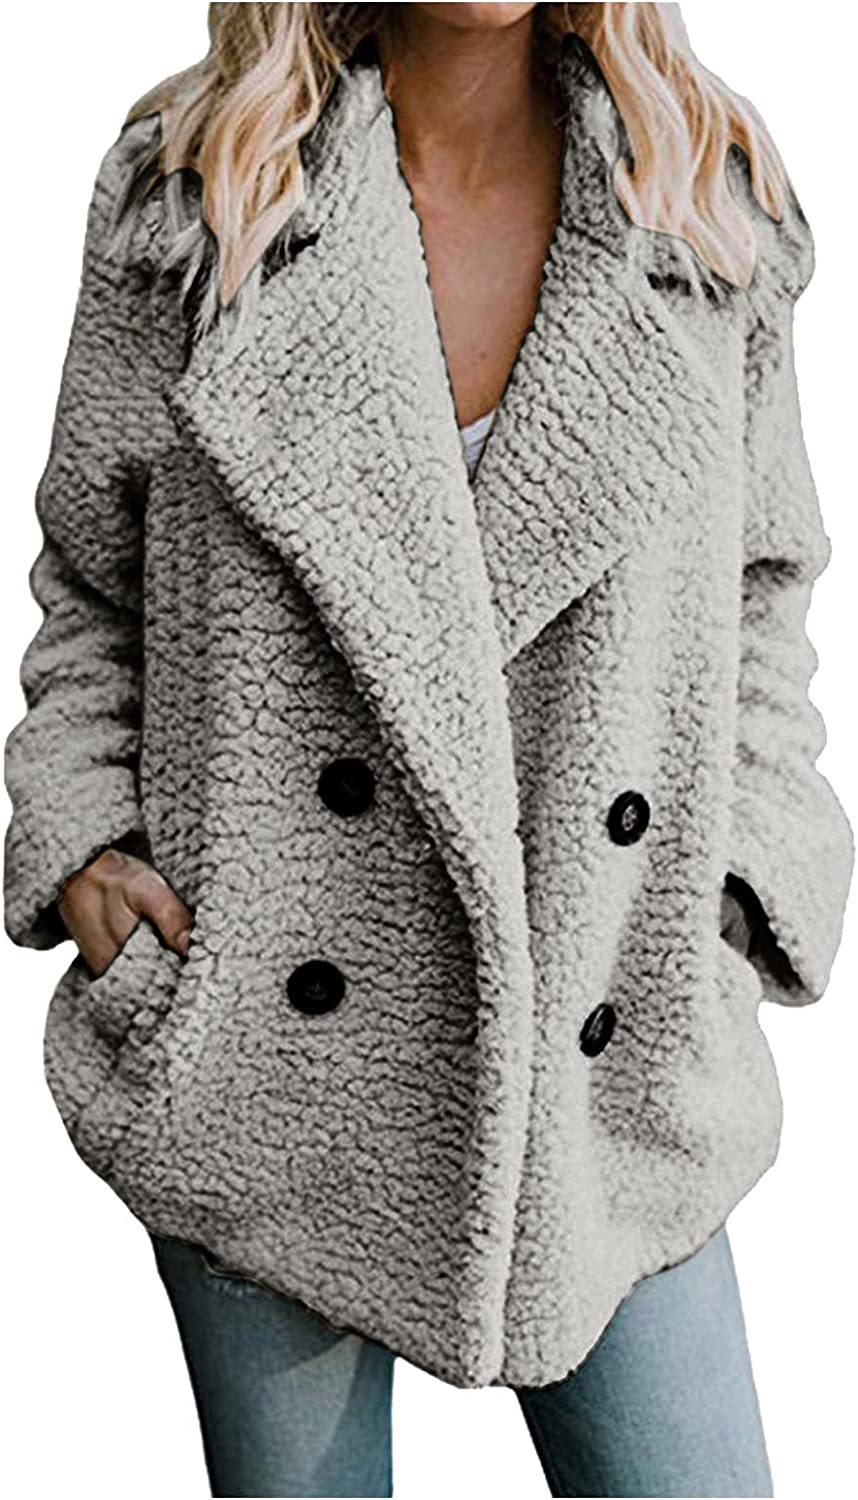 Womens Winter Fleece Open Front Sherpa Coat Casual Lapel Fuzzy Jacket Oversized Cardigan Thick sweater Outerwear with Pocket